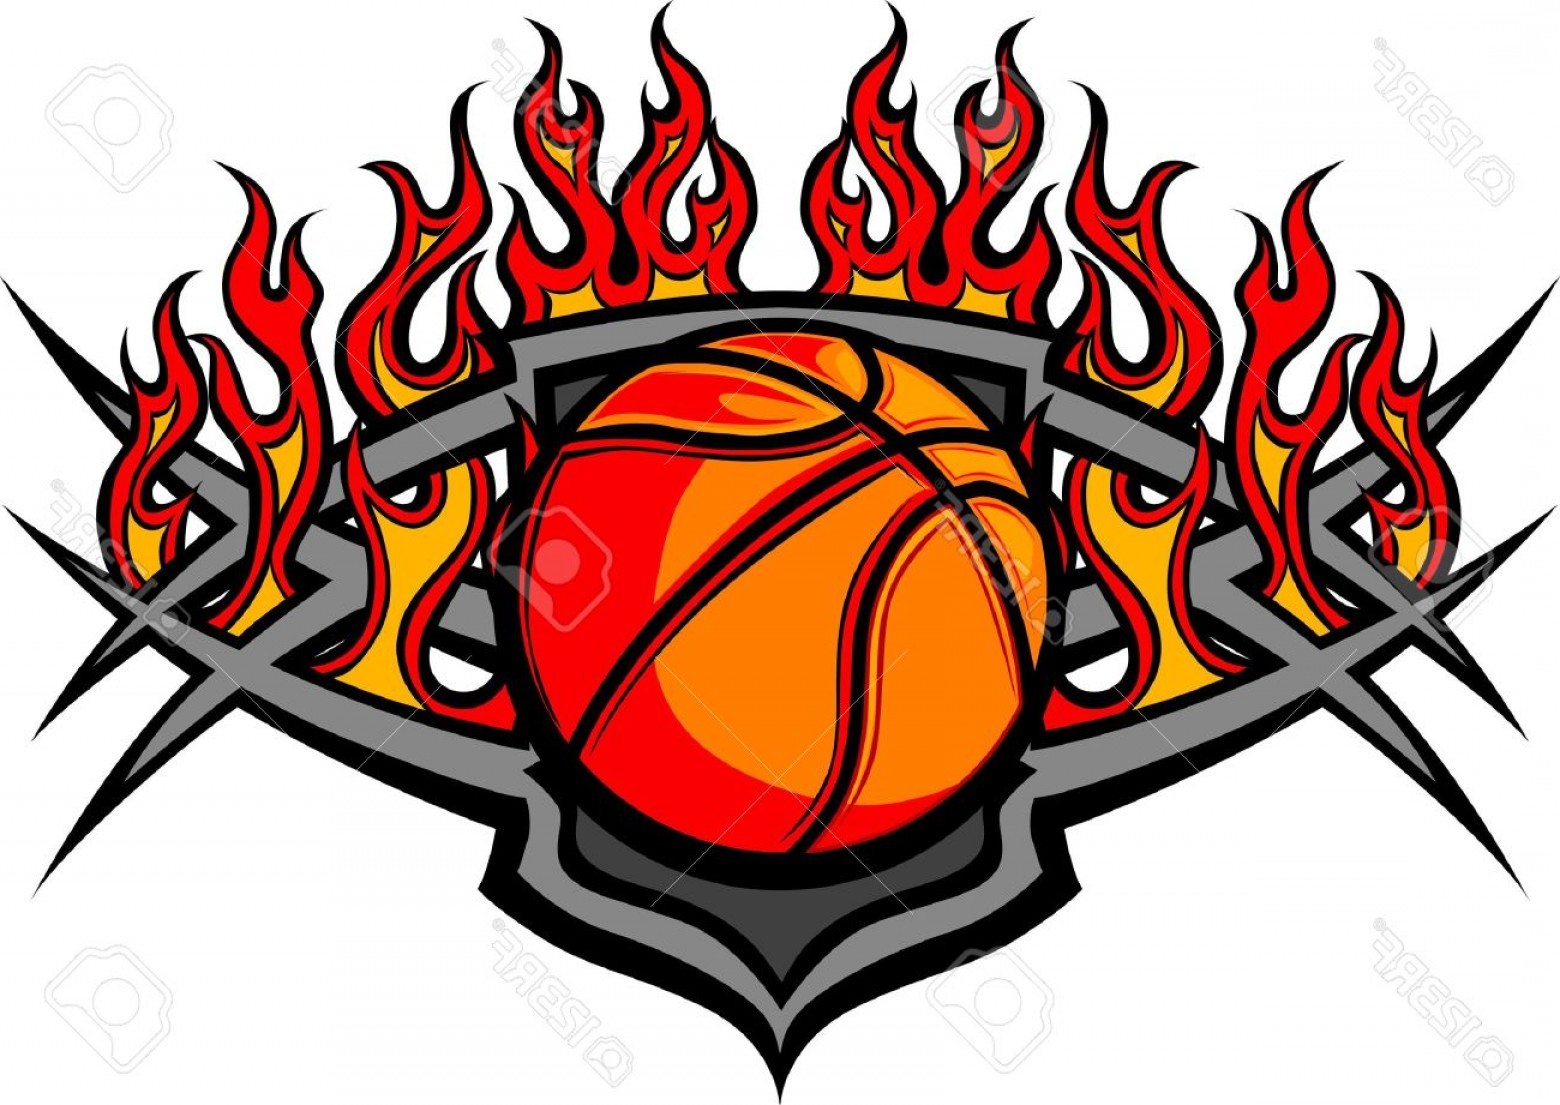 Basketball Vector Graphic Designs: Photographic Basketball Ball Image Template With Flames